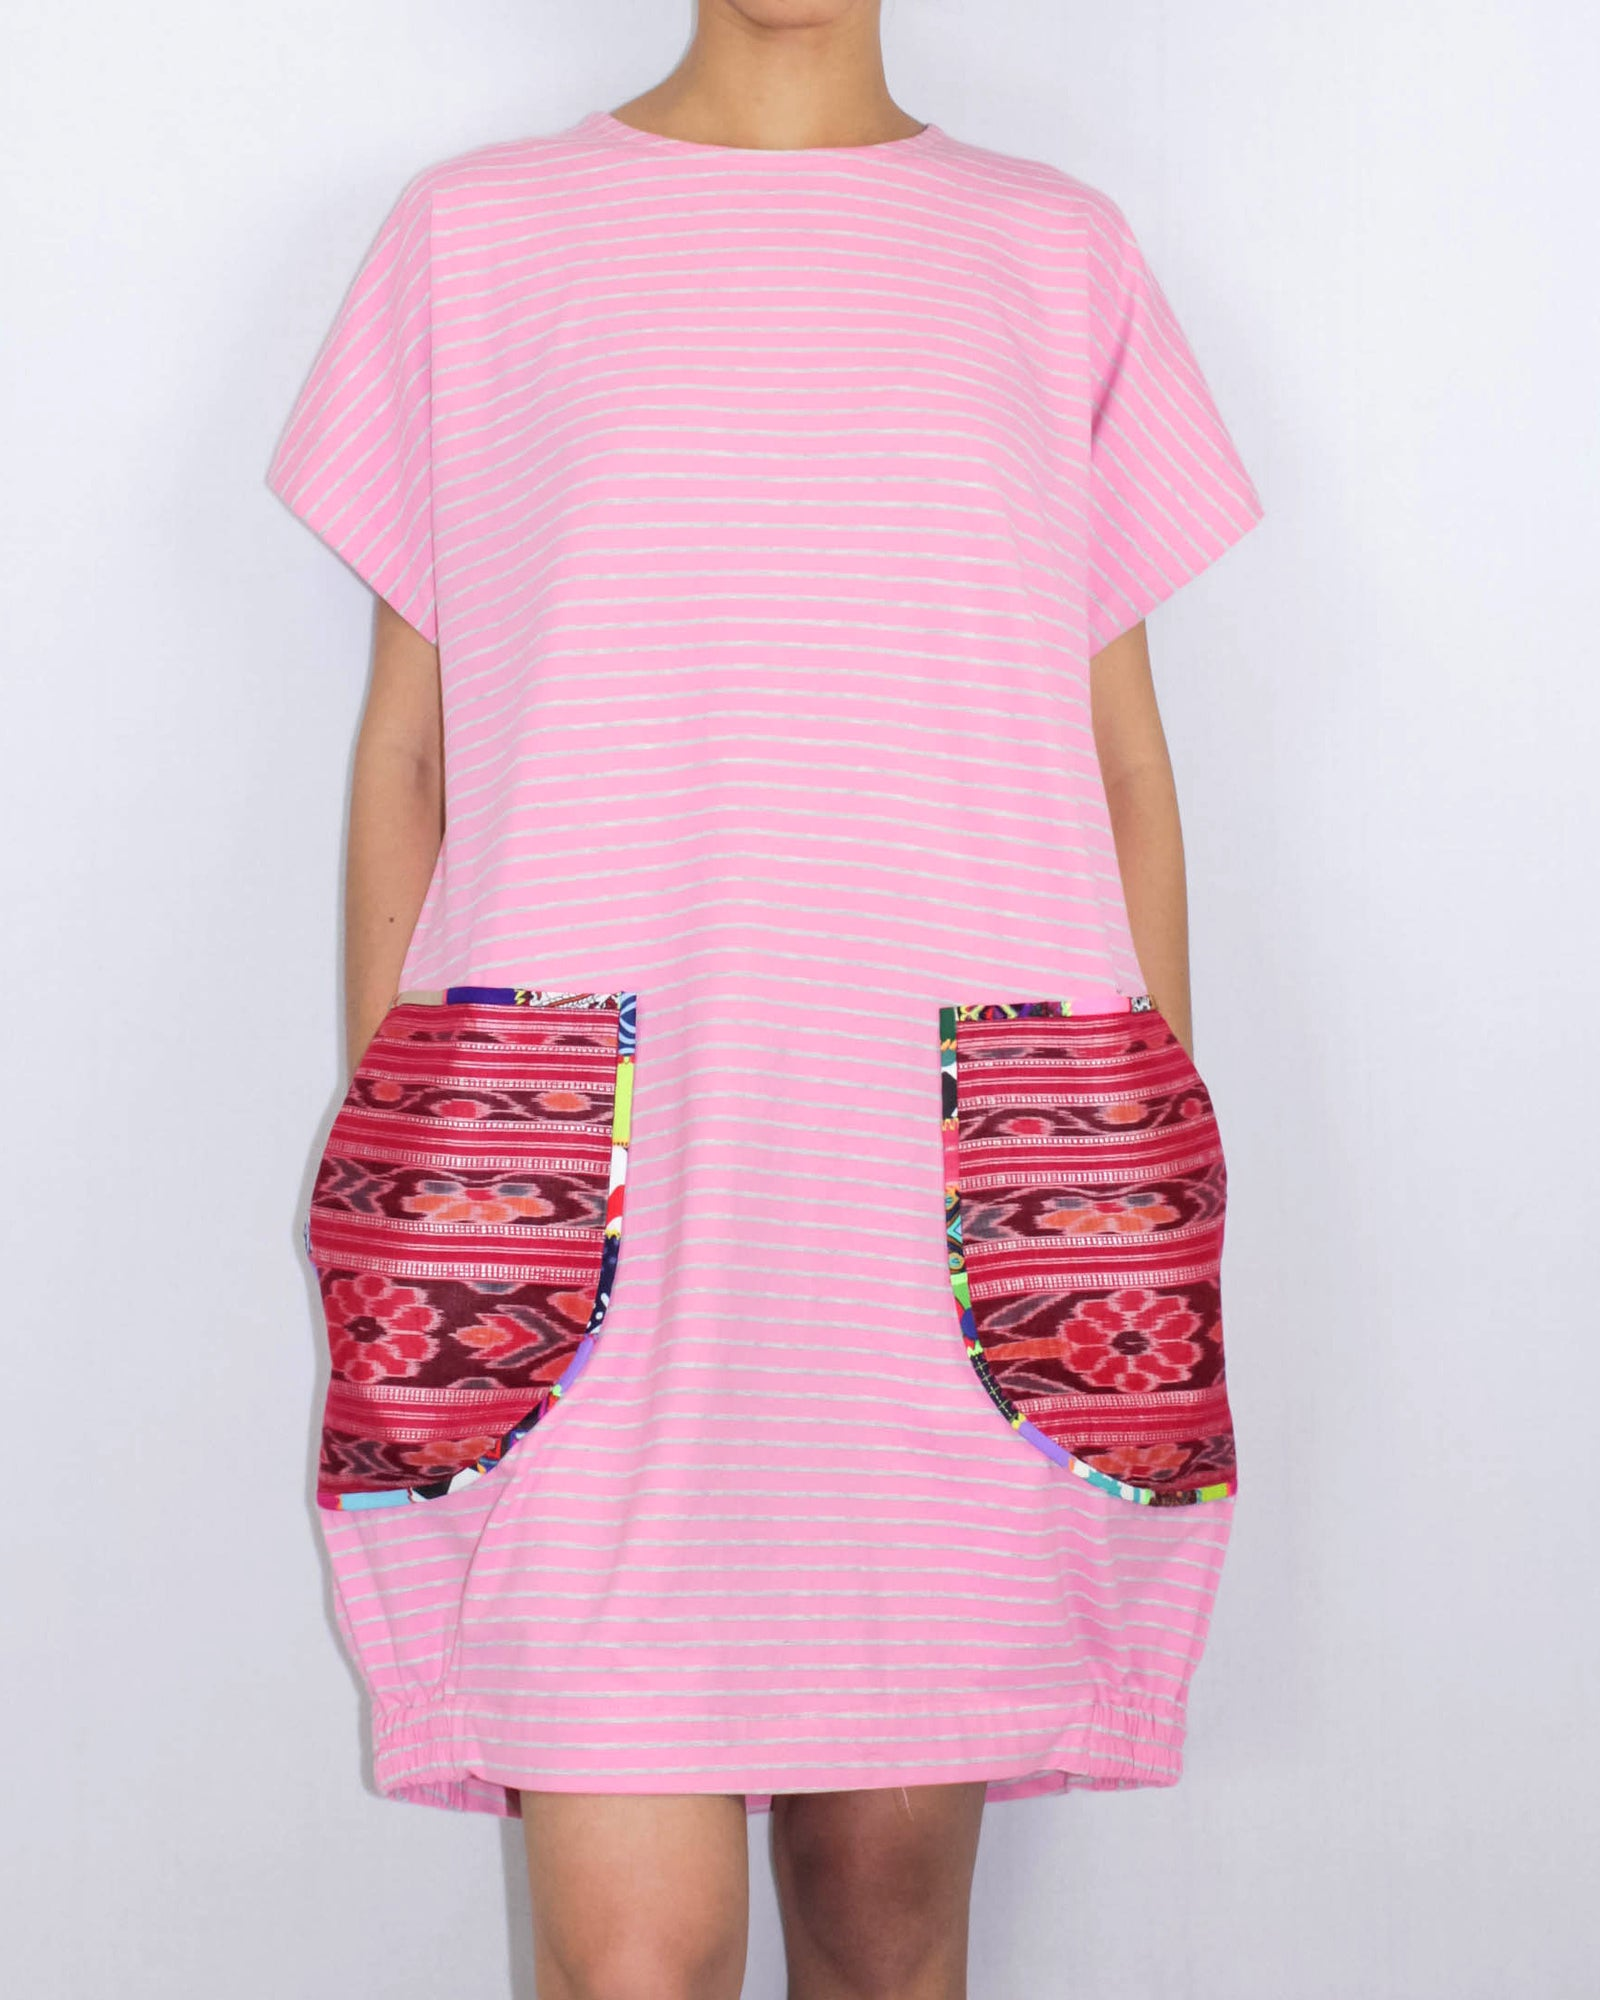 Pretty in Pink T-shirt Dress with ikat pockets by ragmatazz